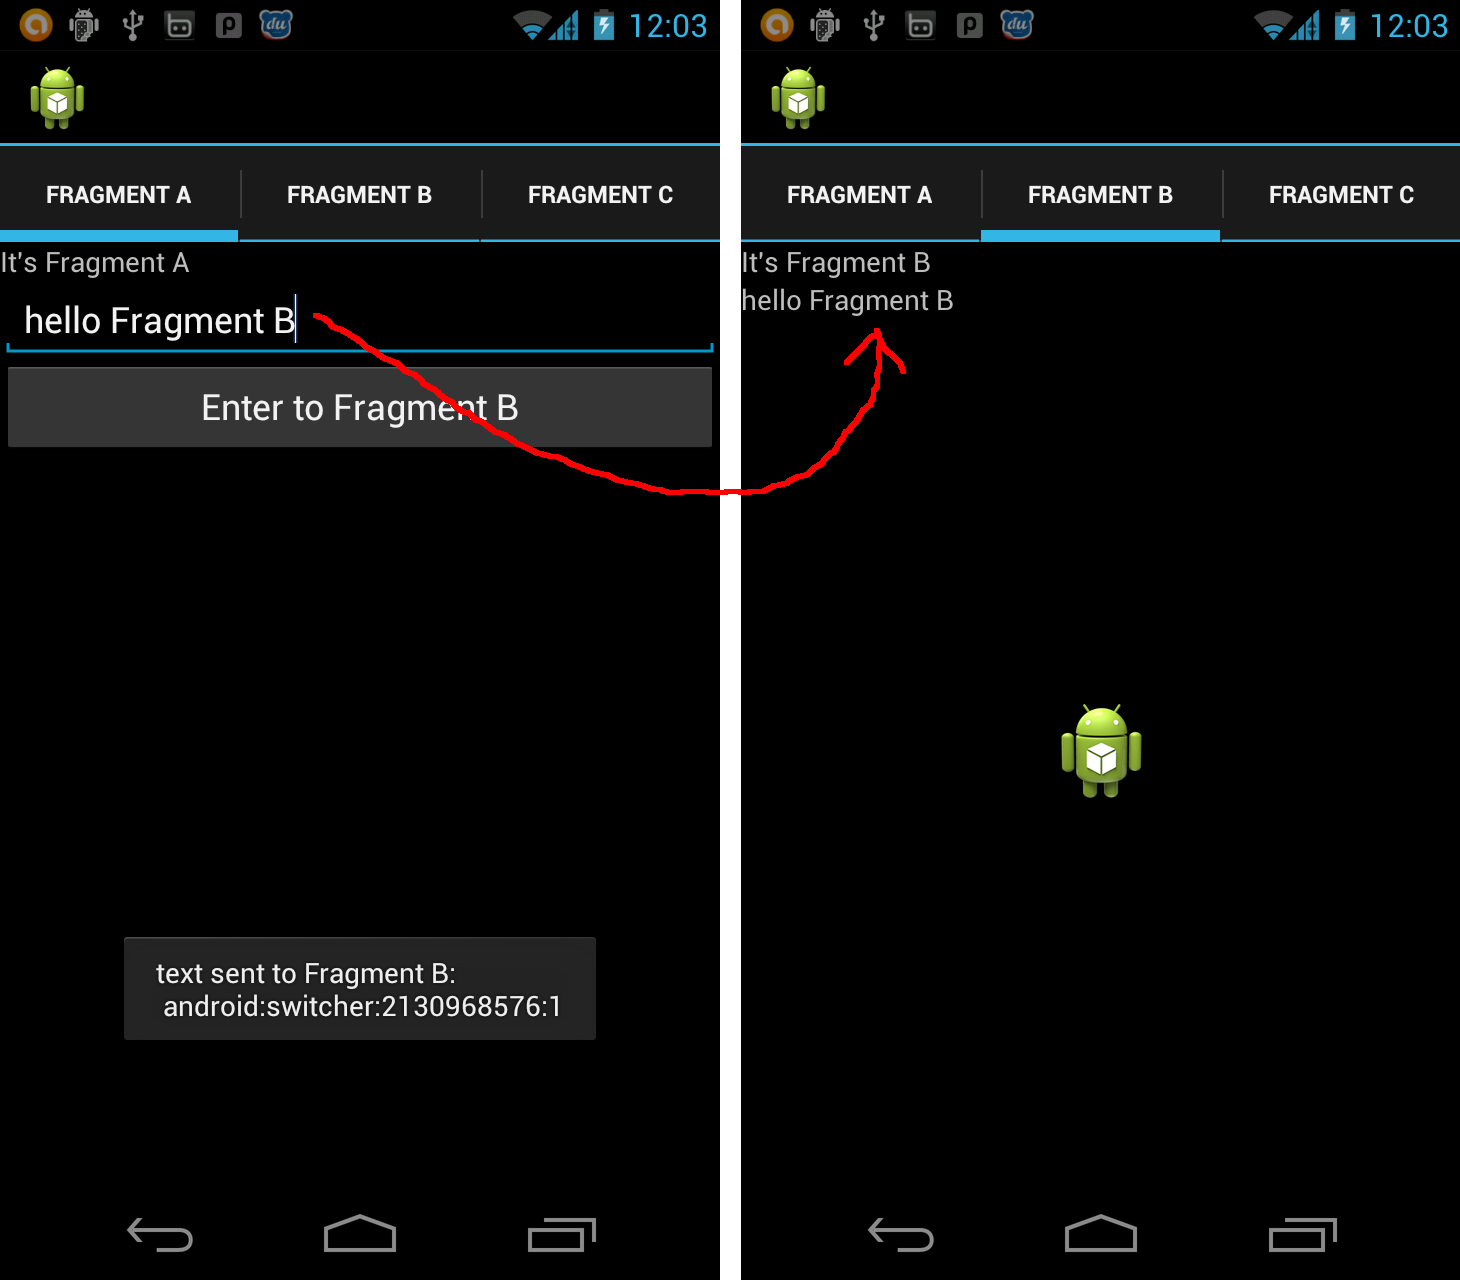 Android fragmentpageradapter getitem not called dating